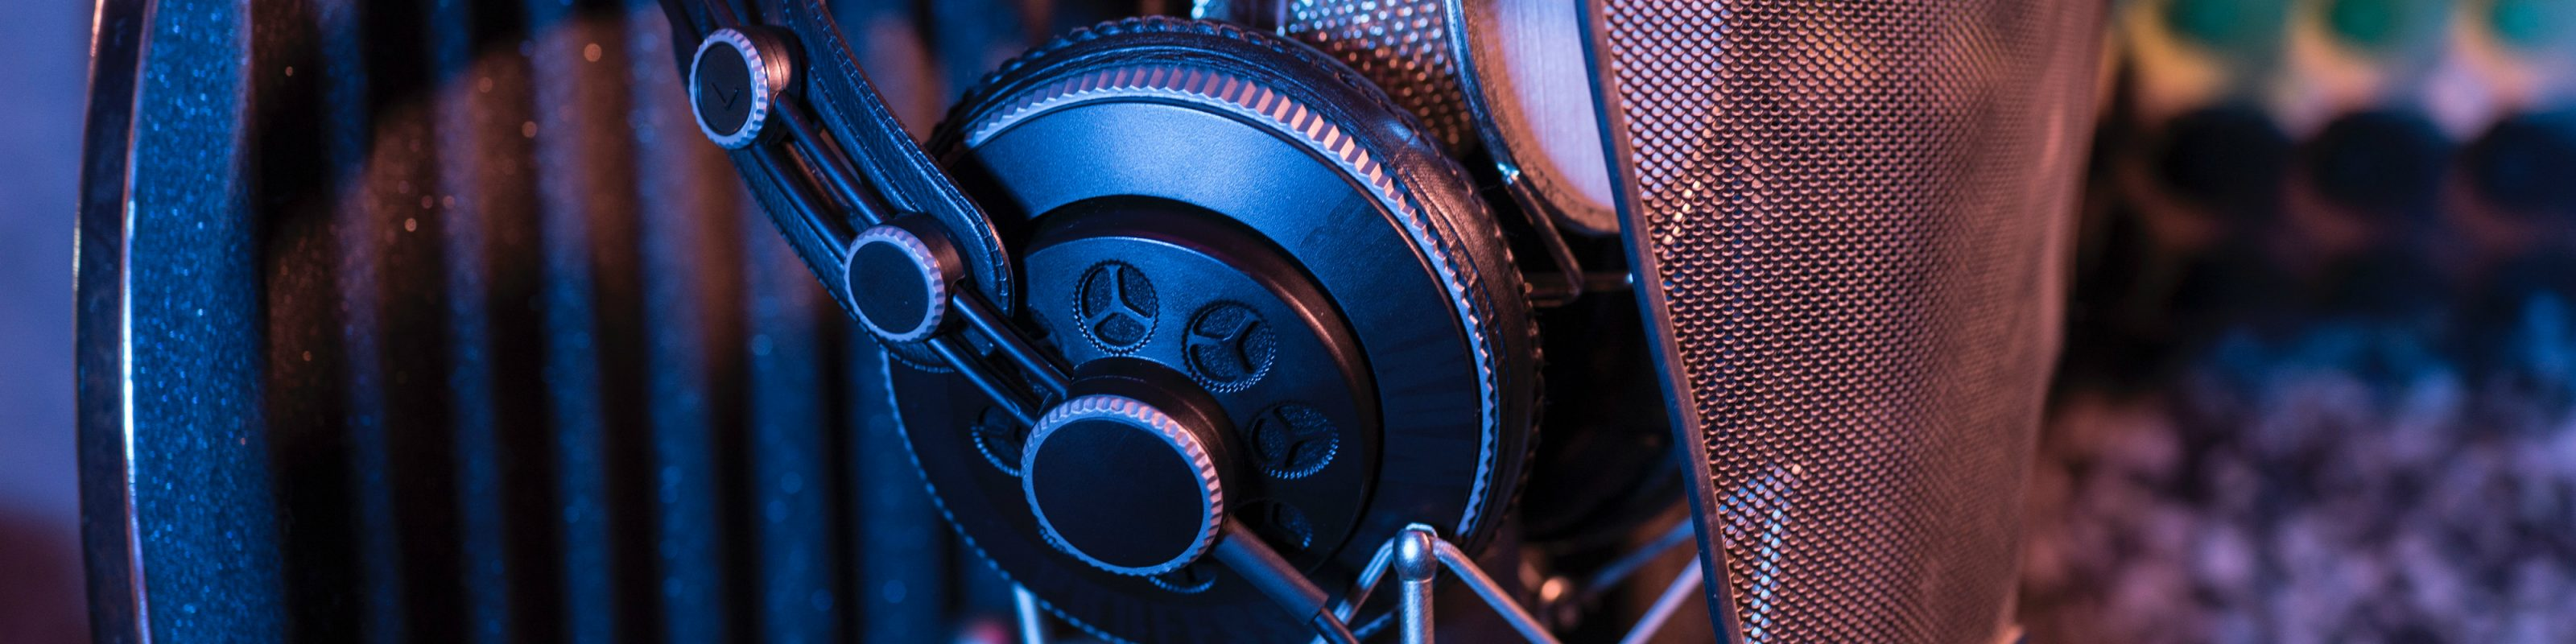 Over-ear studio headphones for recording